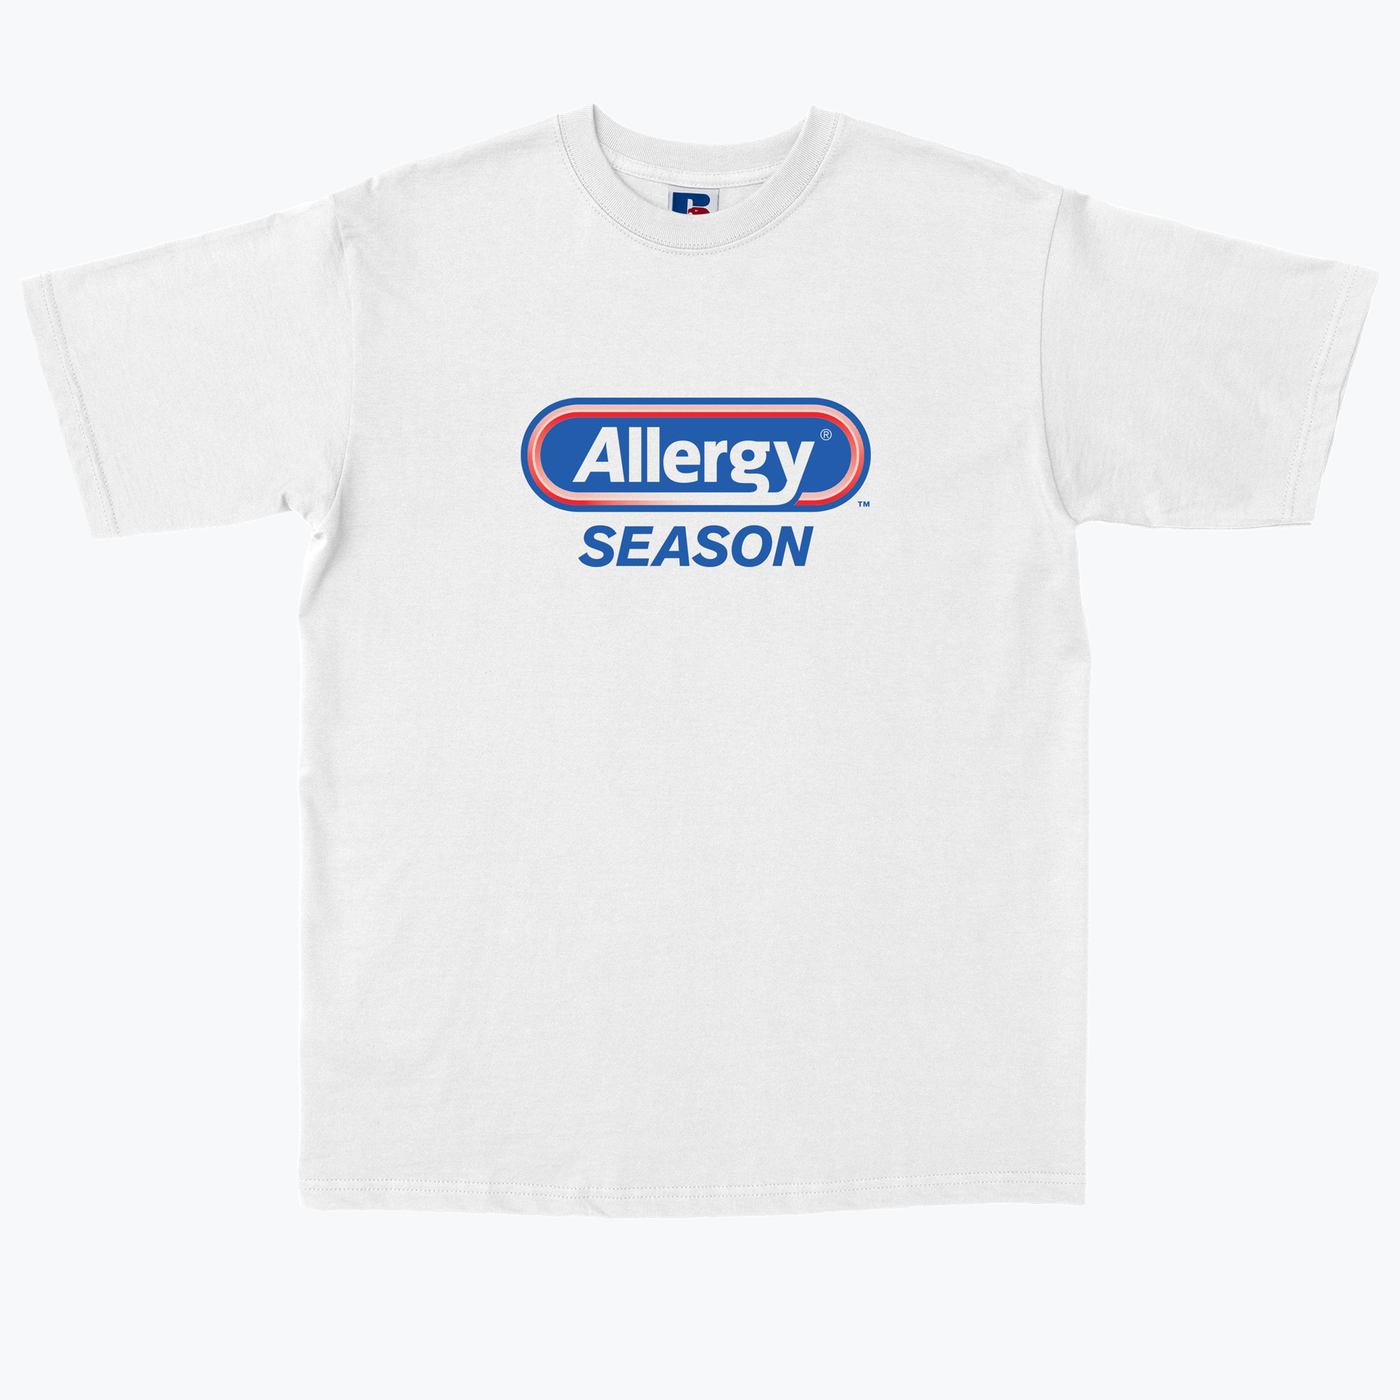 Allergy Season logo T-shirt